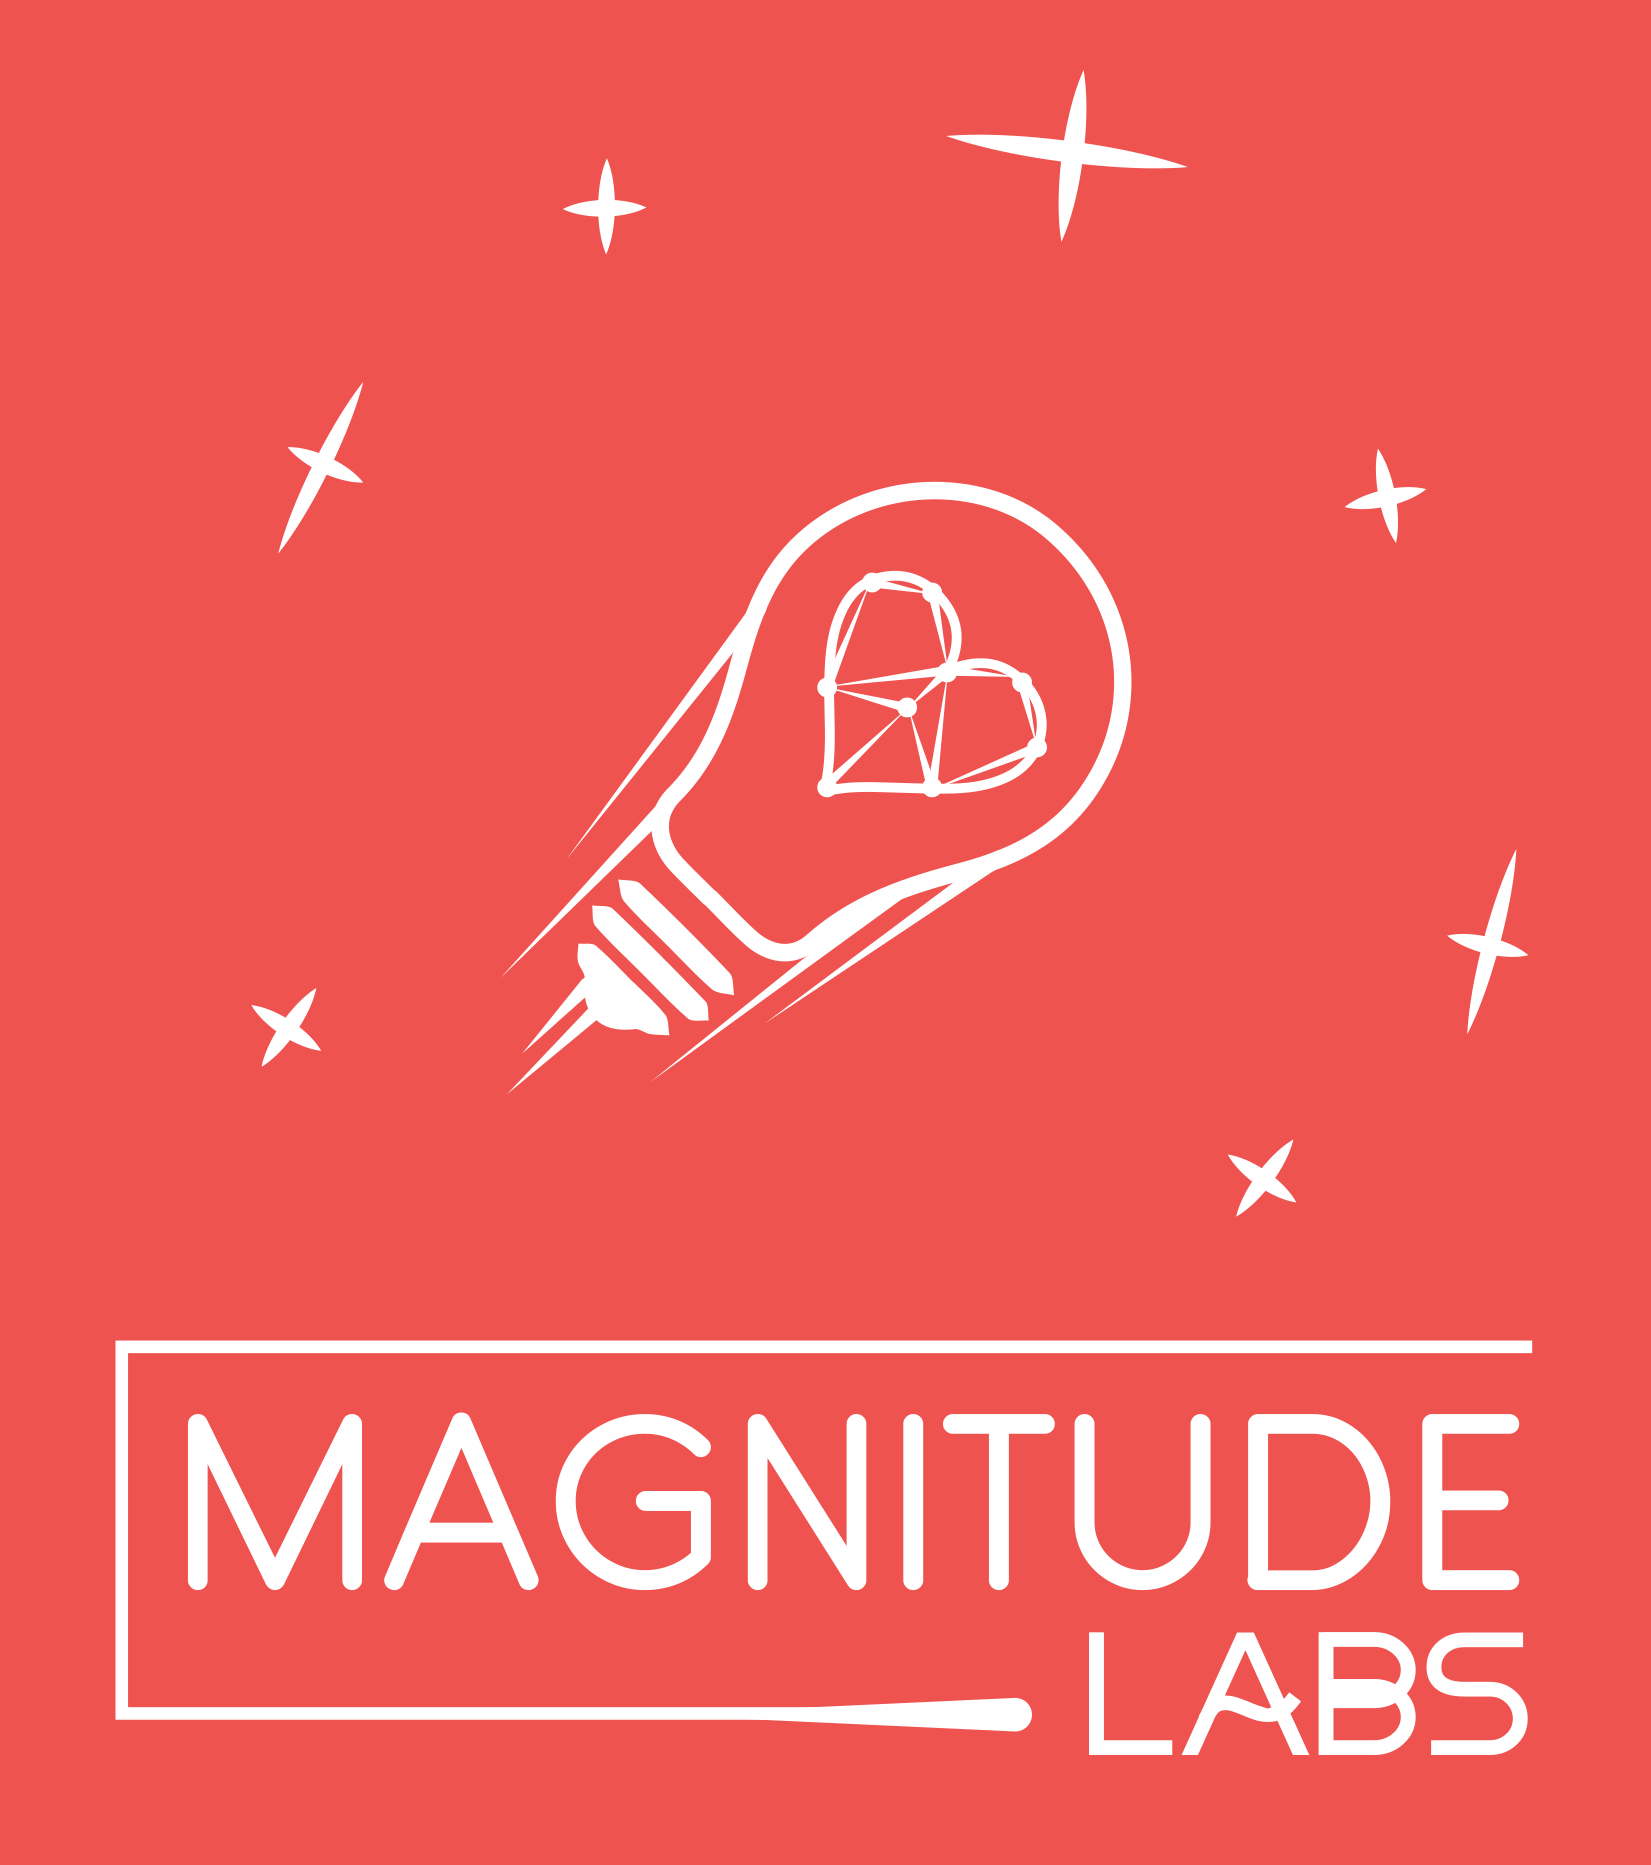 magnitude-labs